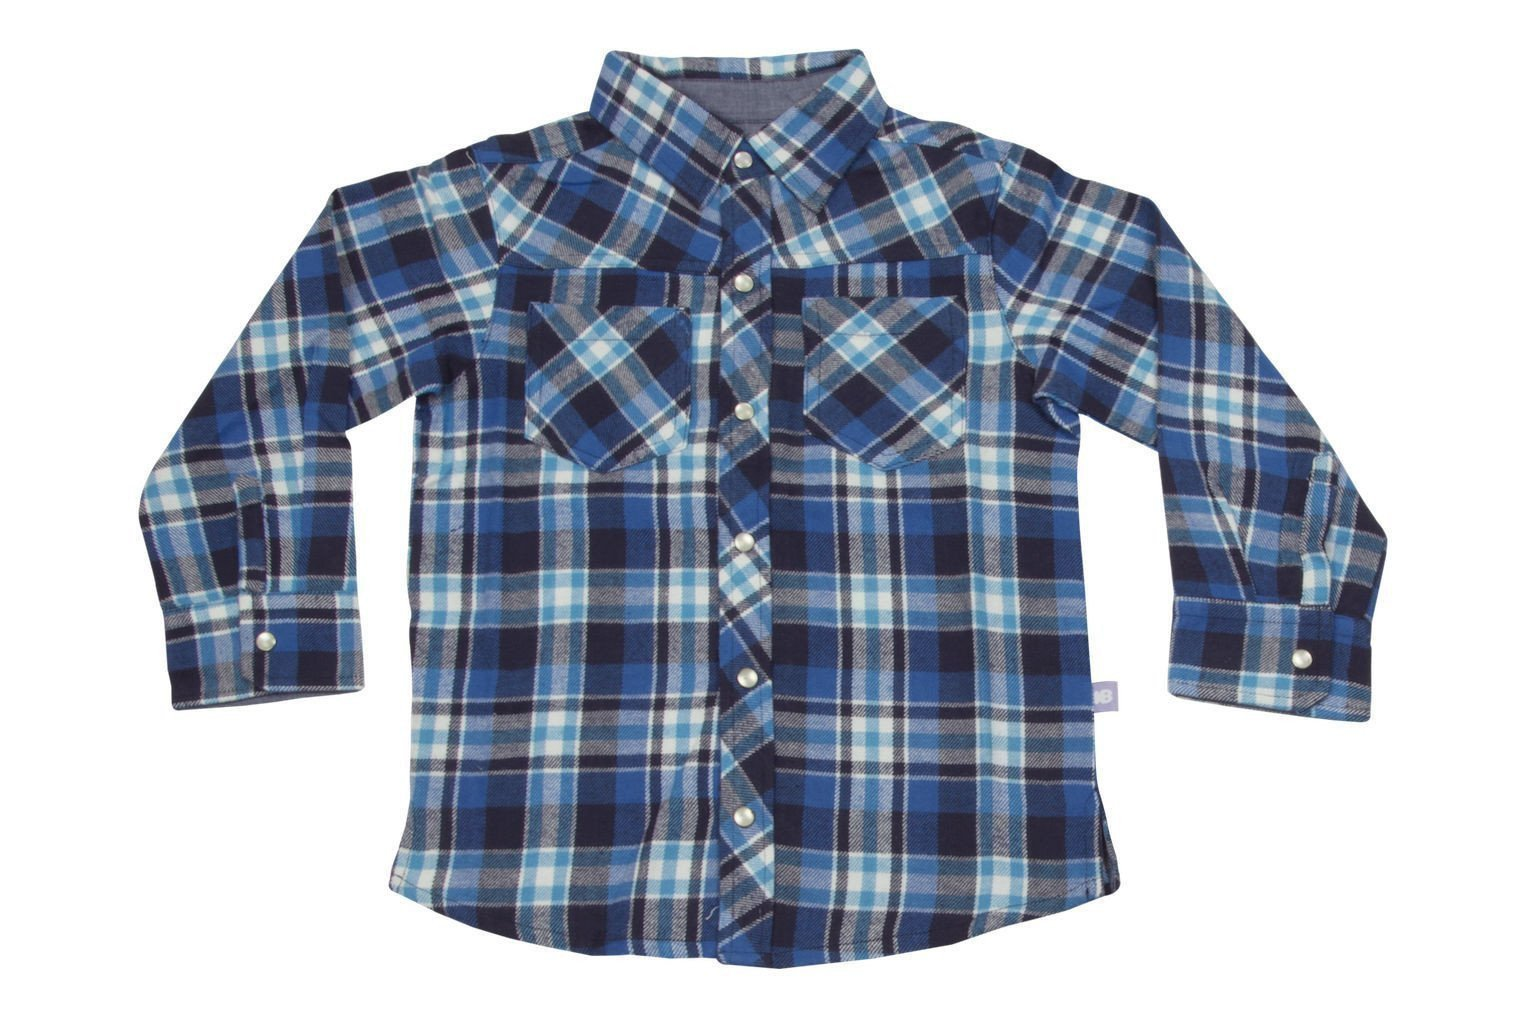 Buffalo Check Plaid Shirt - HUGABUG